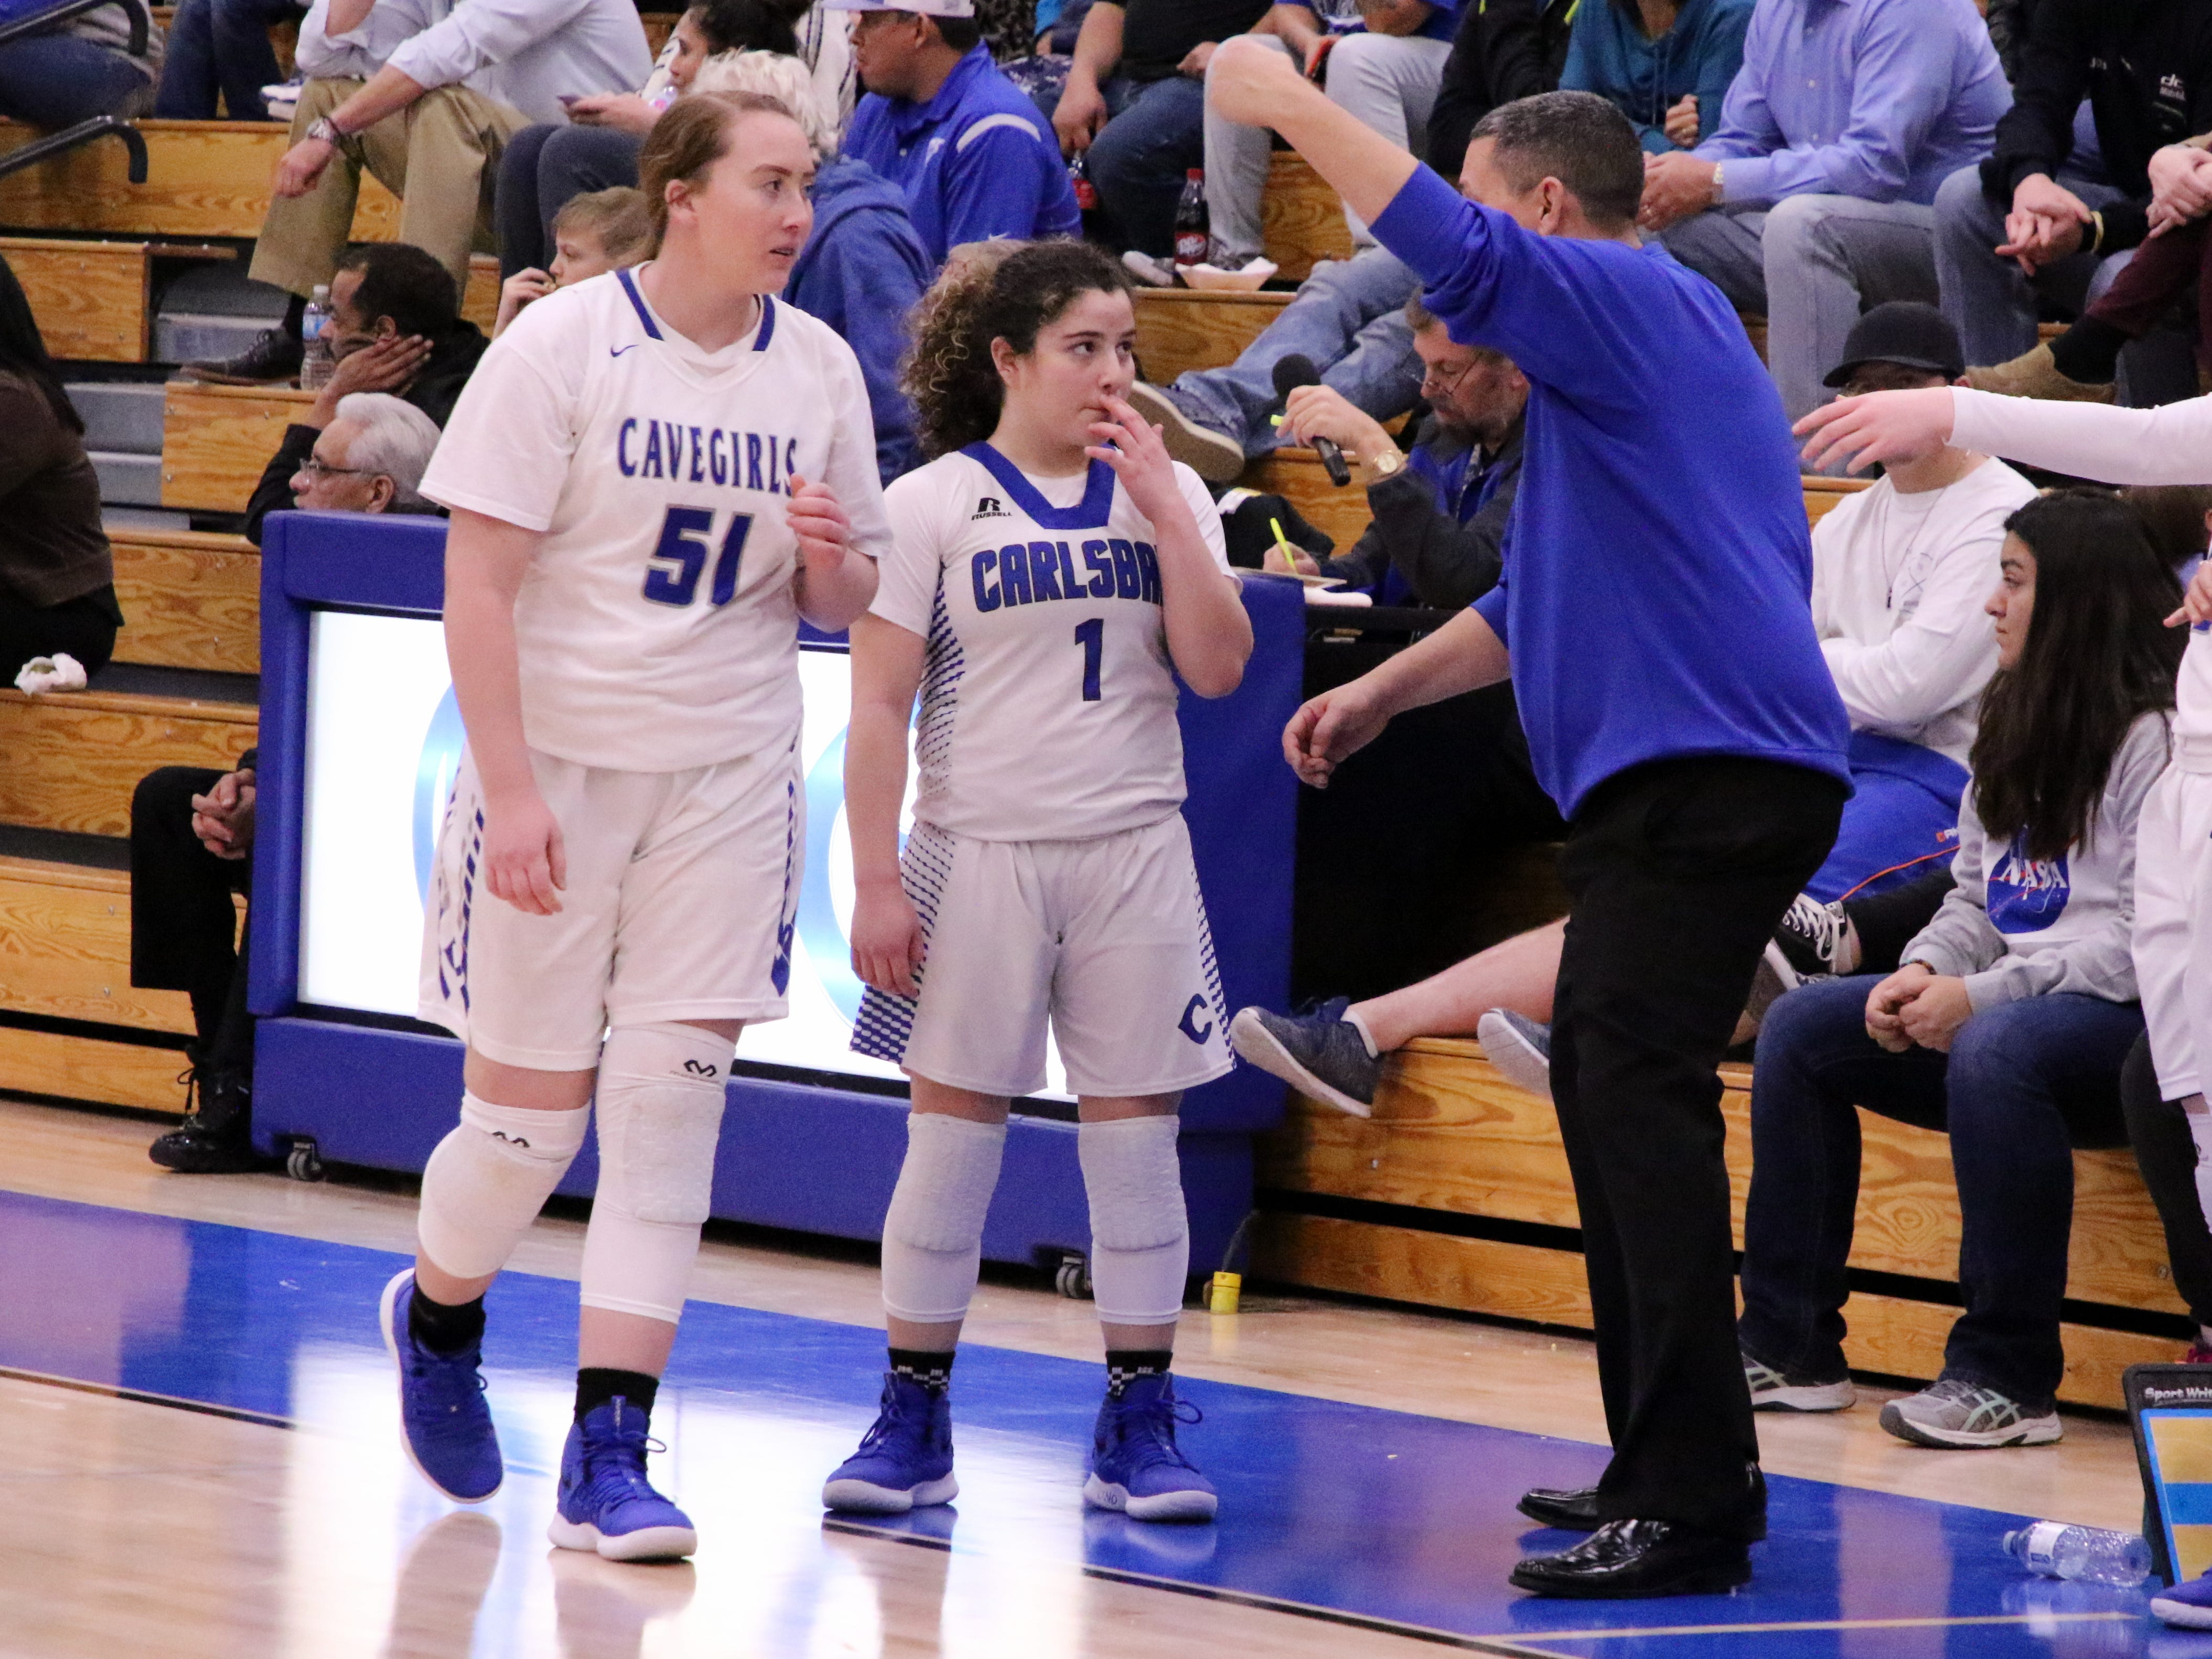 John Zumbrun gives instructions to Jerri Lynn McDonald (1) and Jaelee Bourque (51) during Tuesday's game against Lovington.